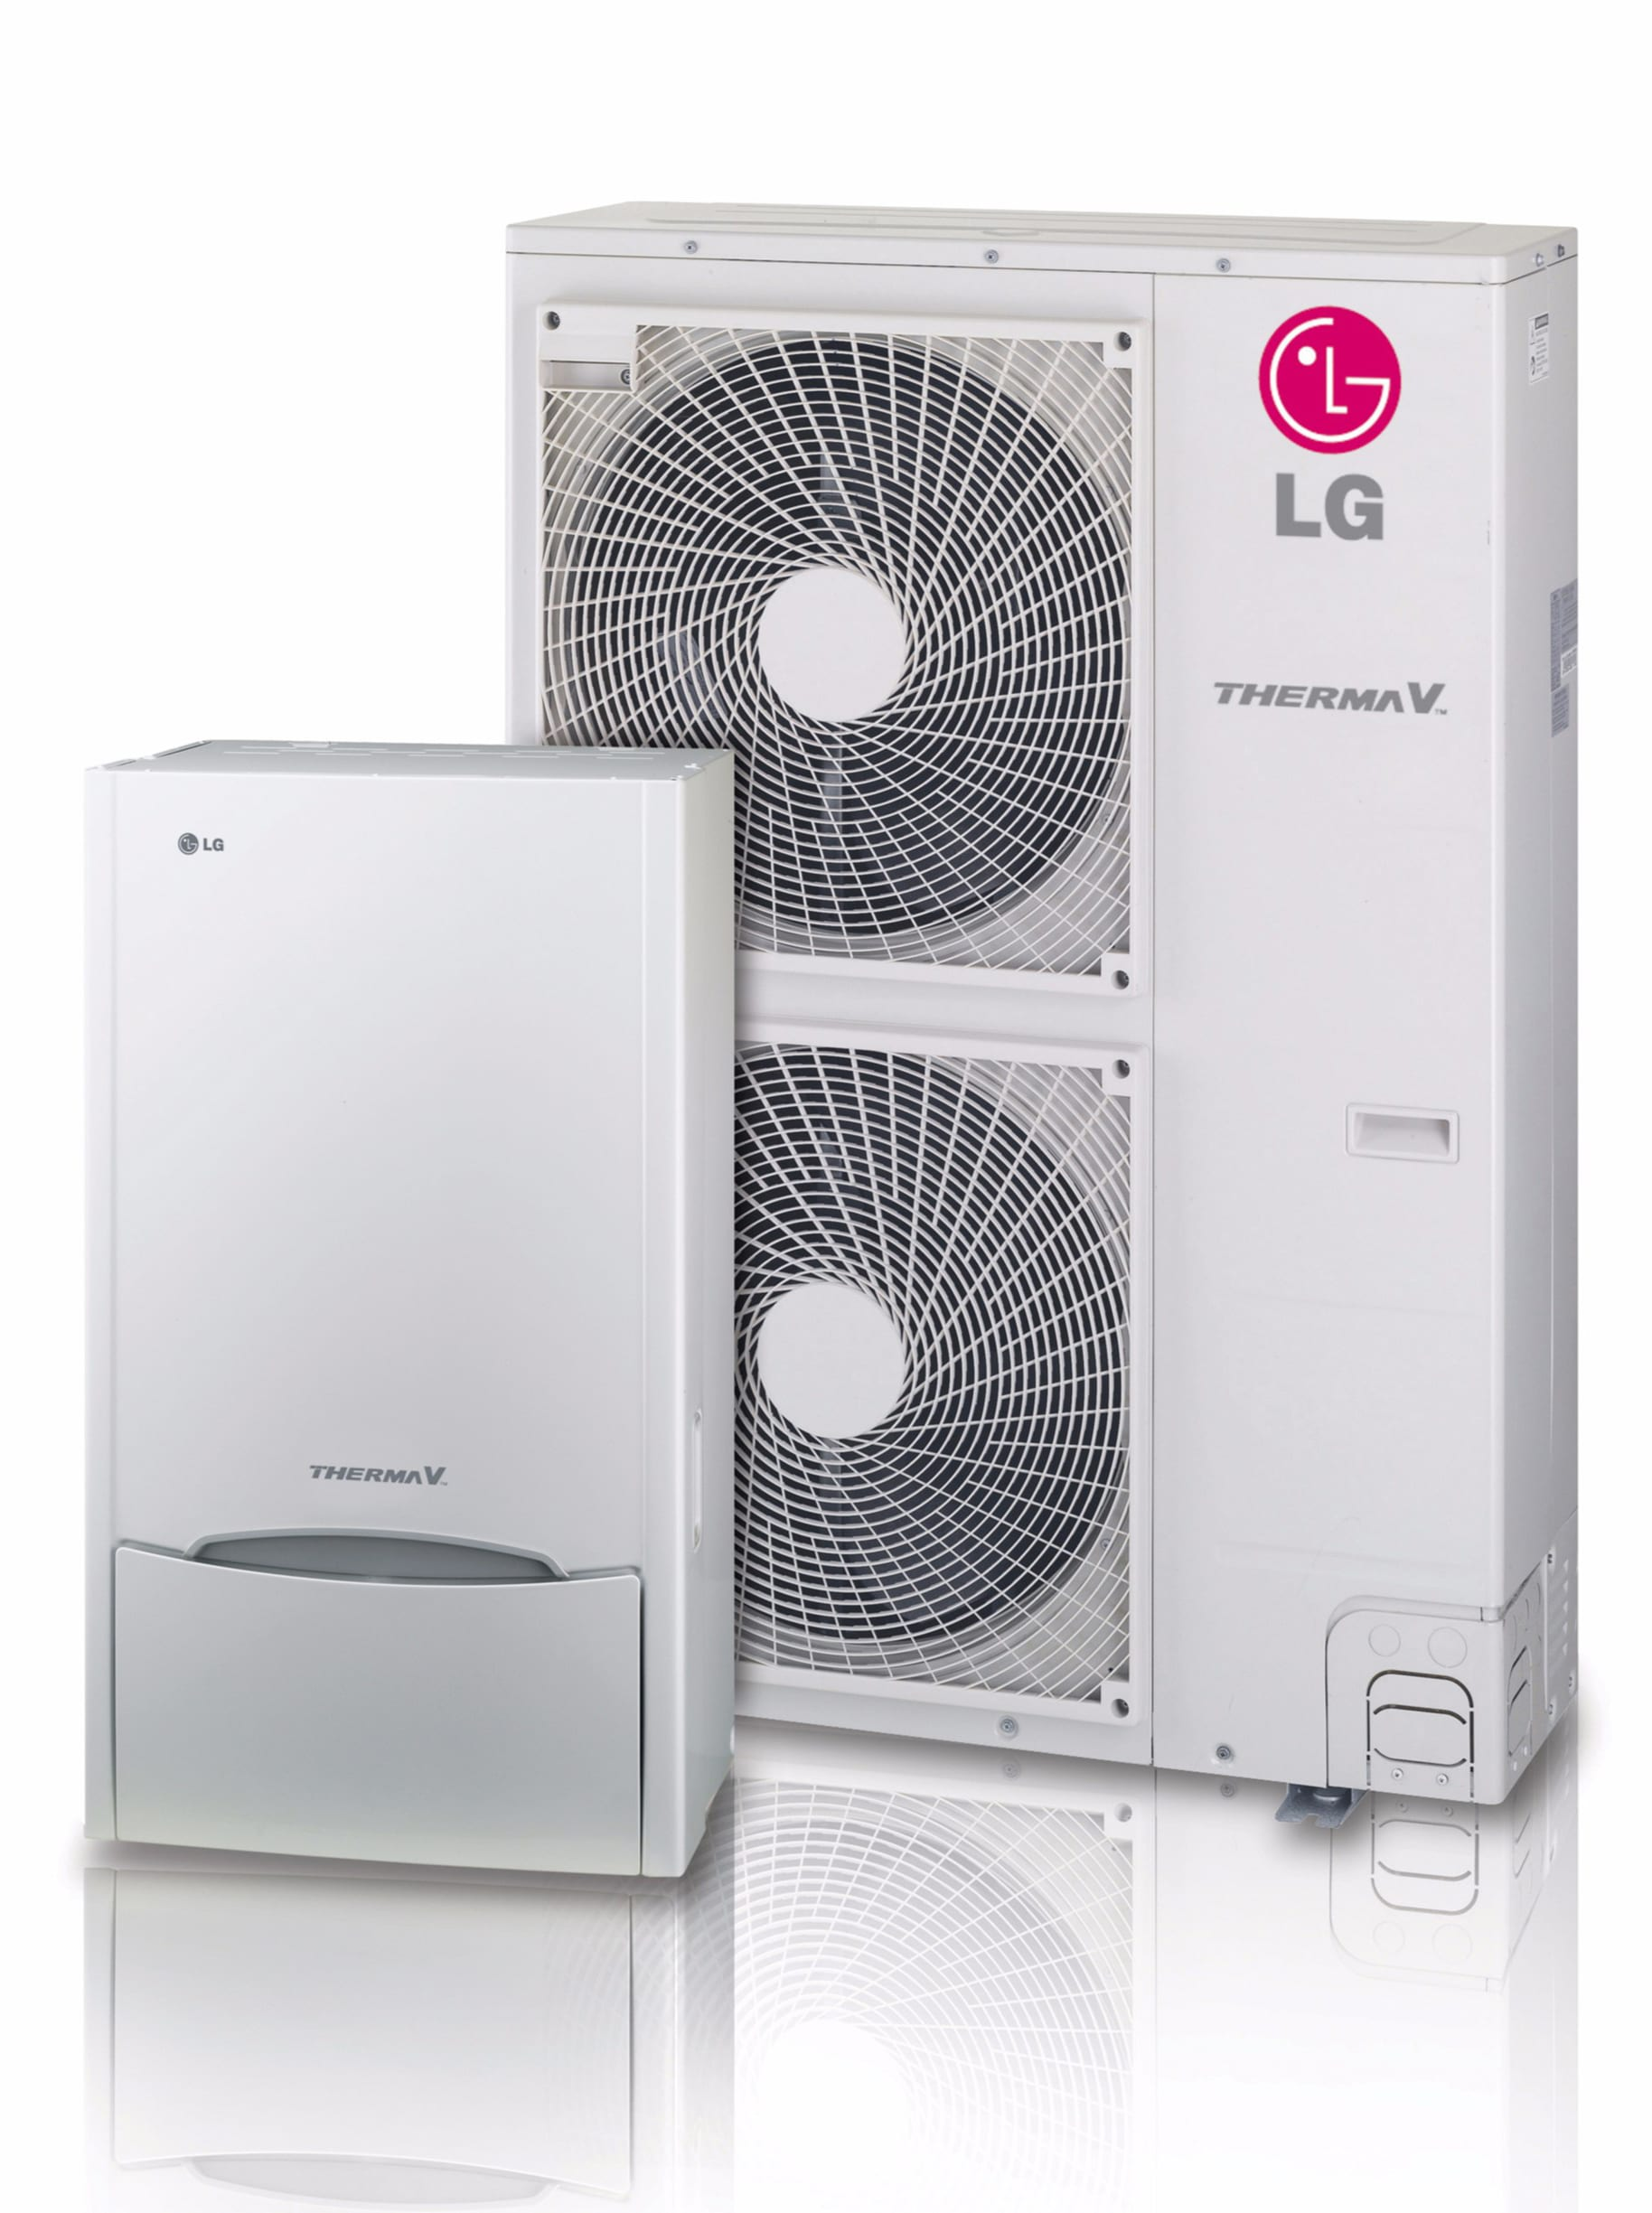 LG ThermaV Air Source Heat Pump